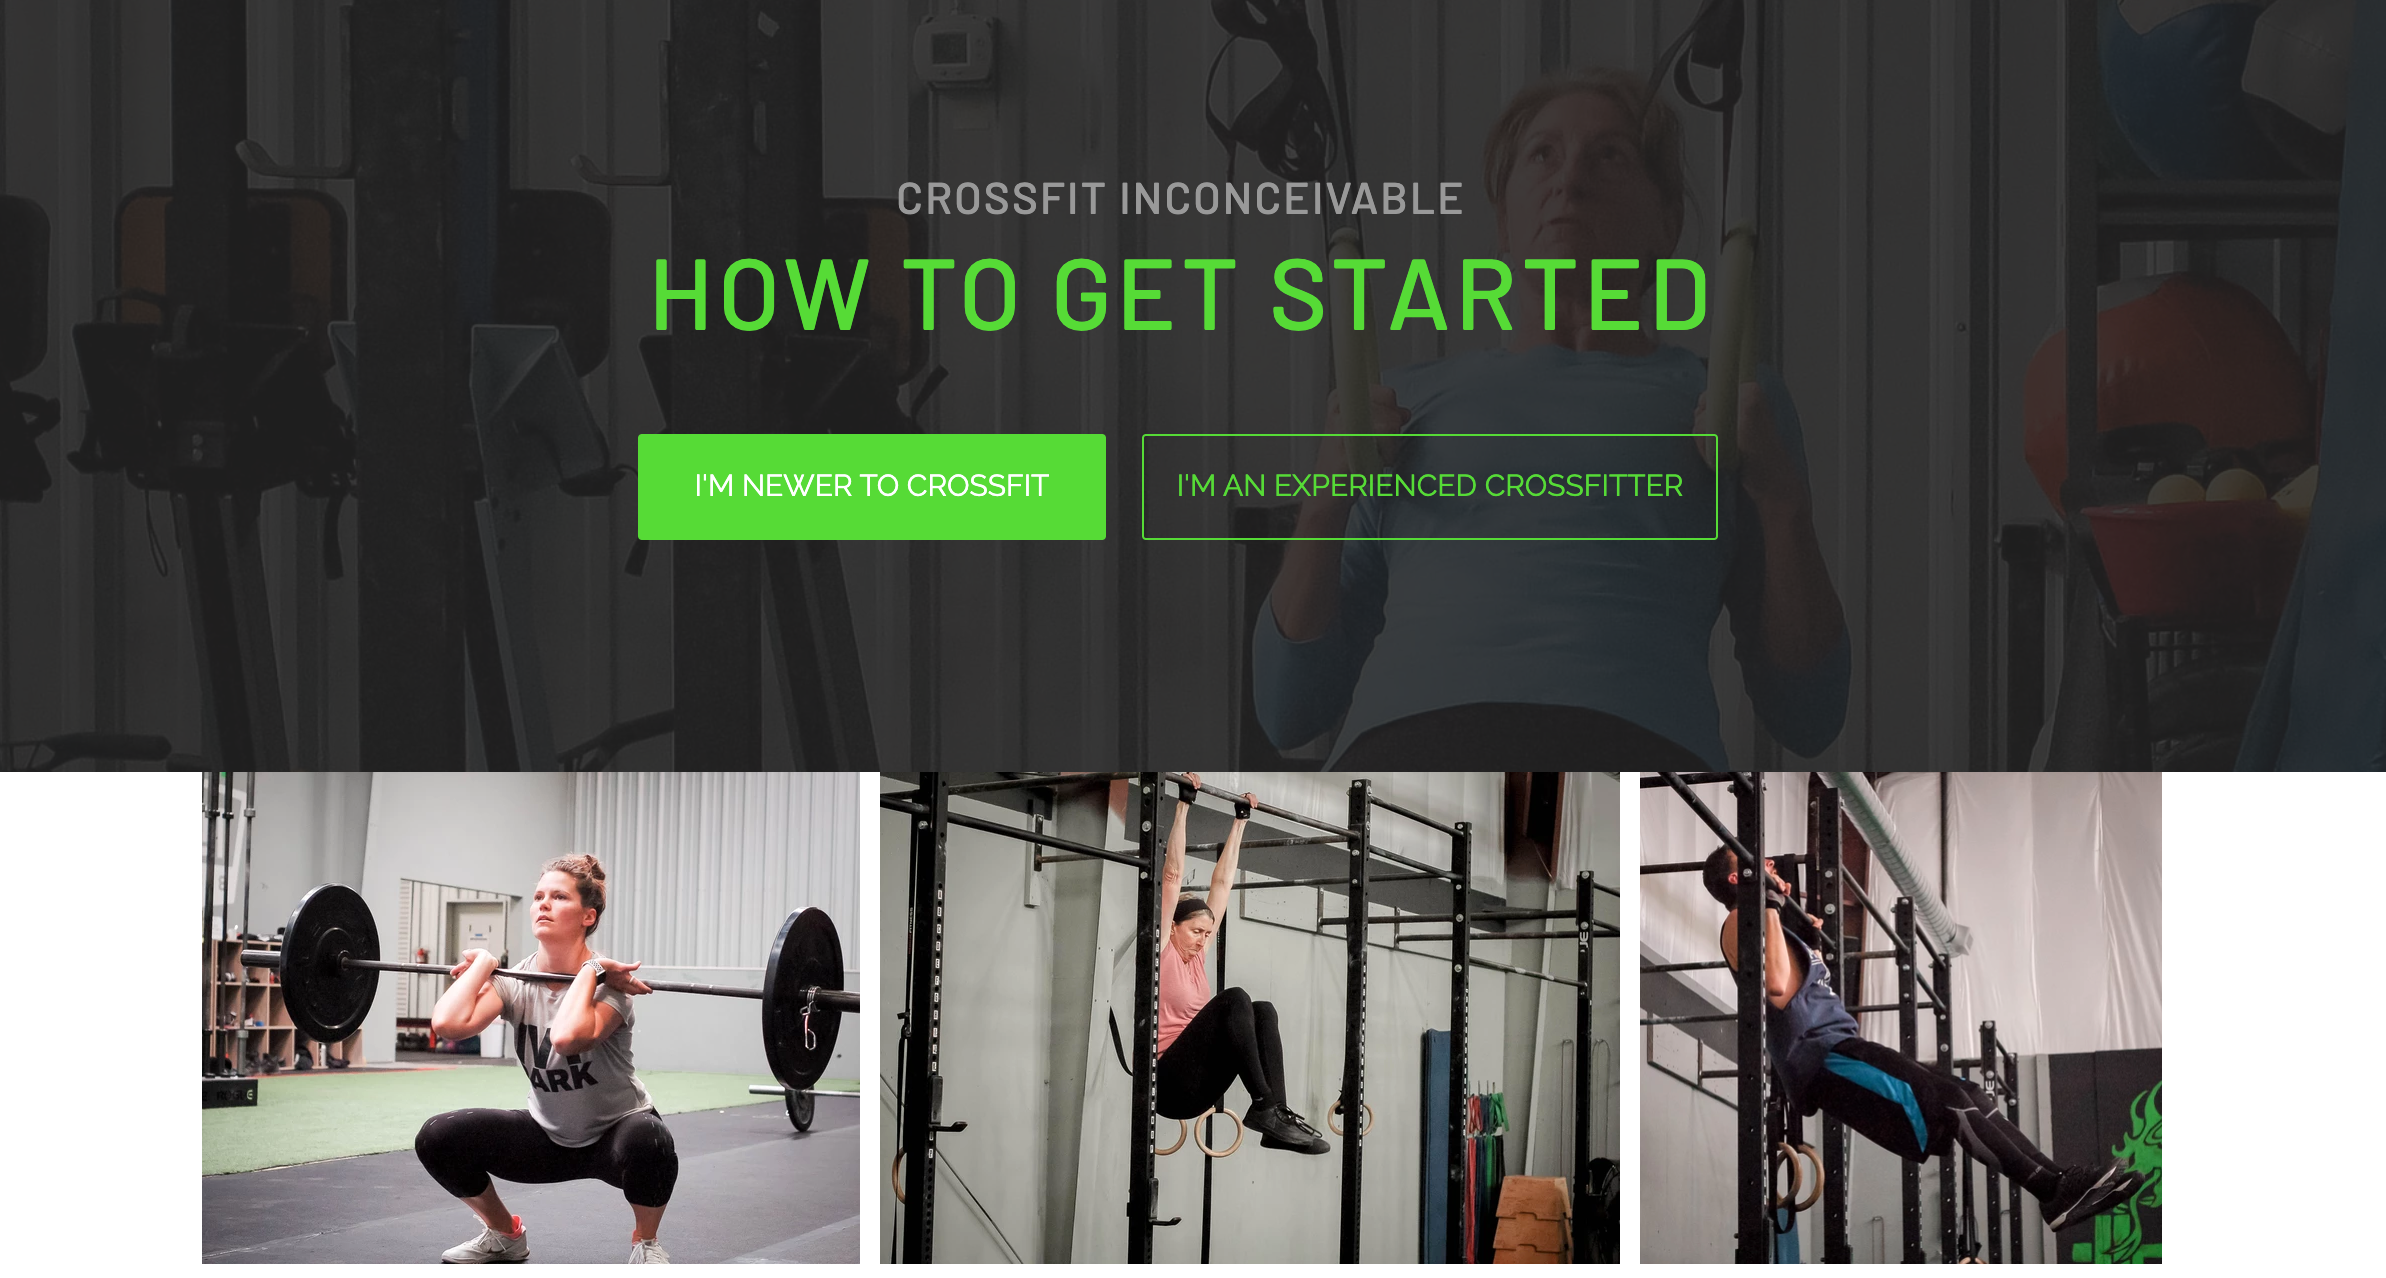 CrossFit Inconceivable Website Design by Art of Barbell